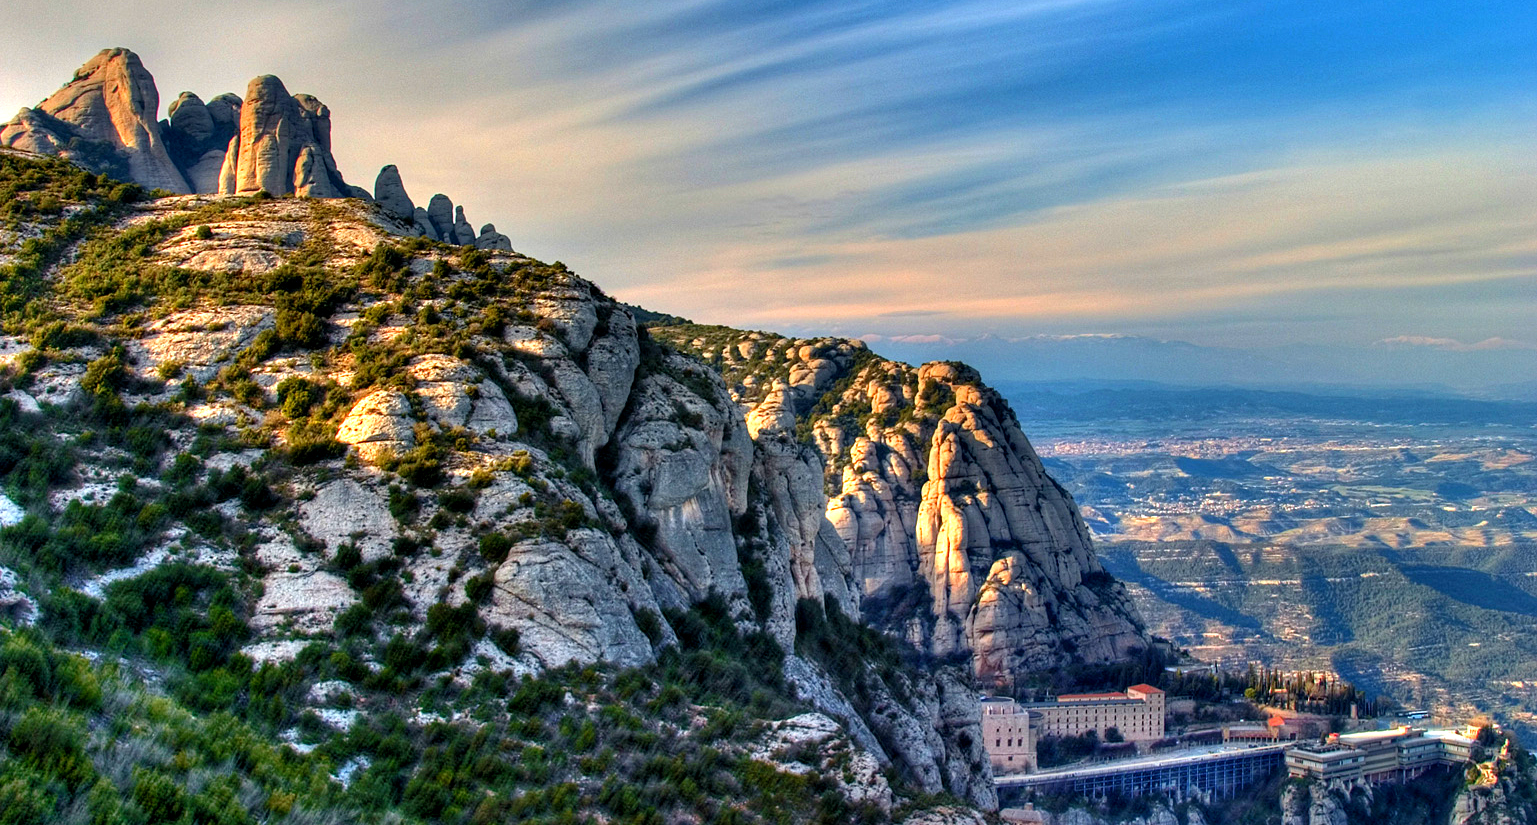 http://barcelona-home.com/blog/wp-content/upload/2013/10/montserrat-mountains-feature.jpg